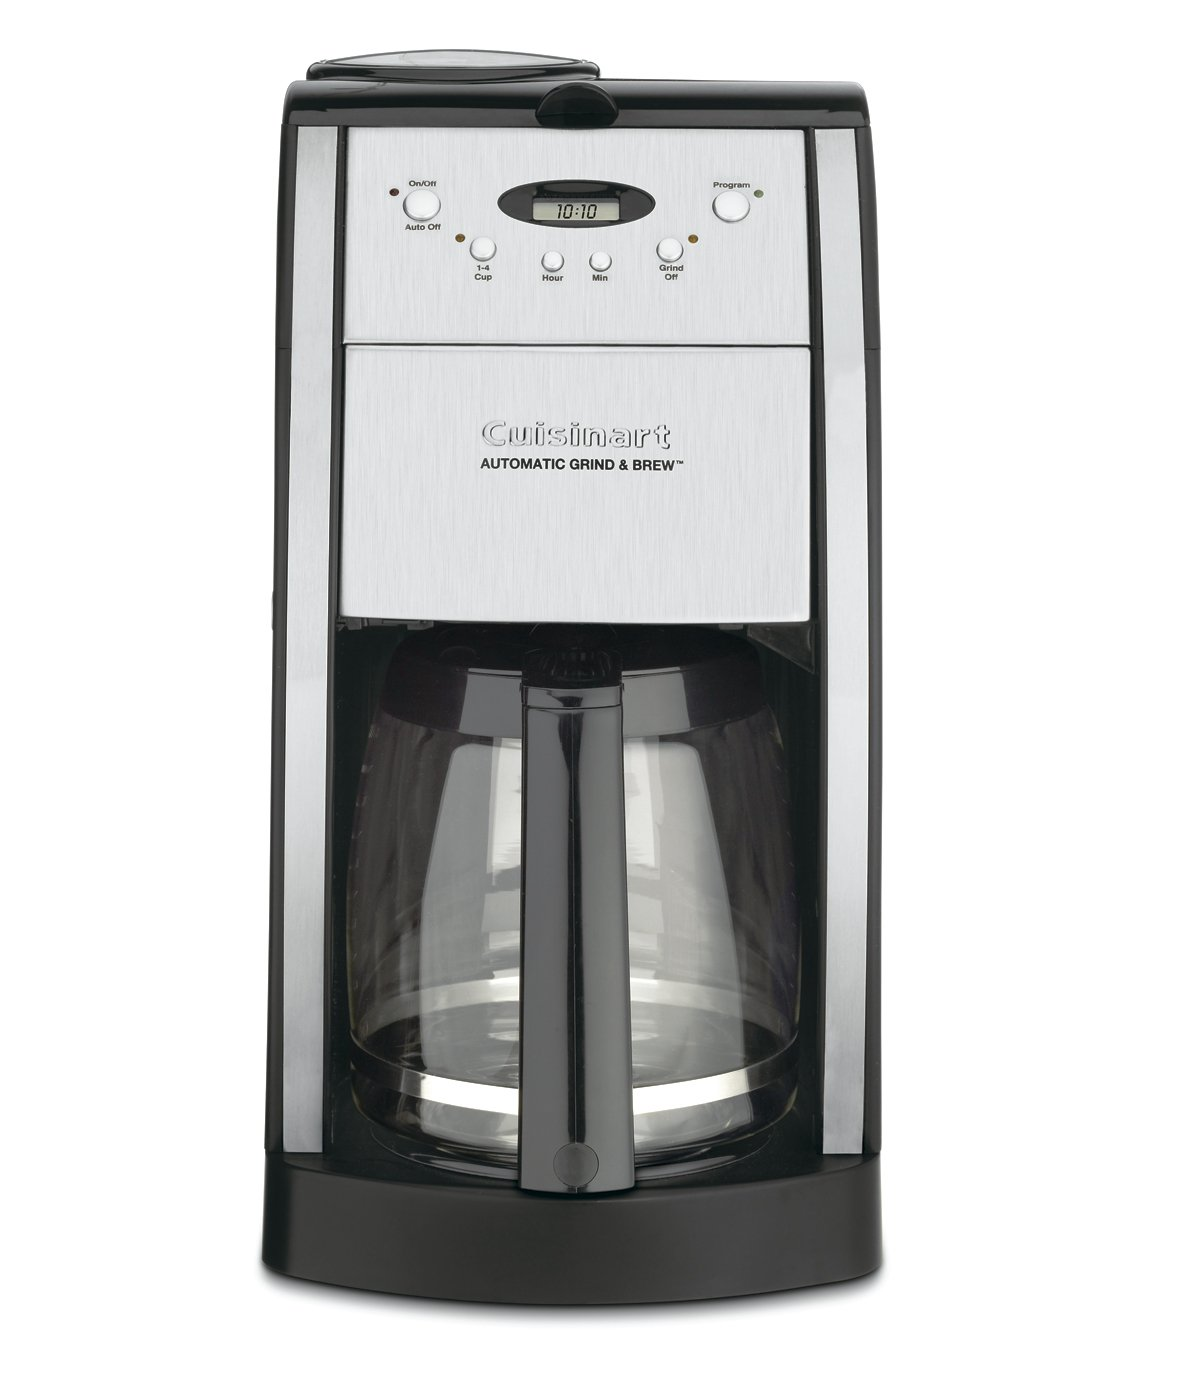 Cuisinart Carafe Coffee Maker Instructions : The Best Cuisinart Coffee Maker With Grinder Seekyt